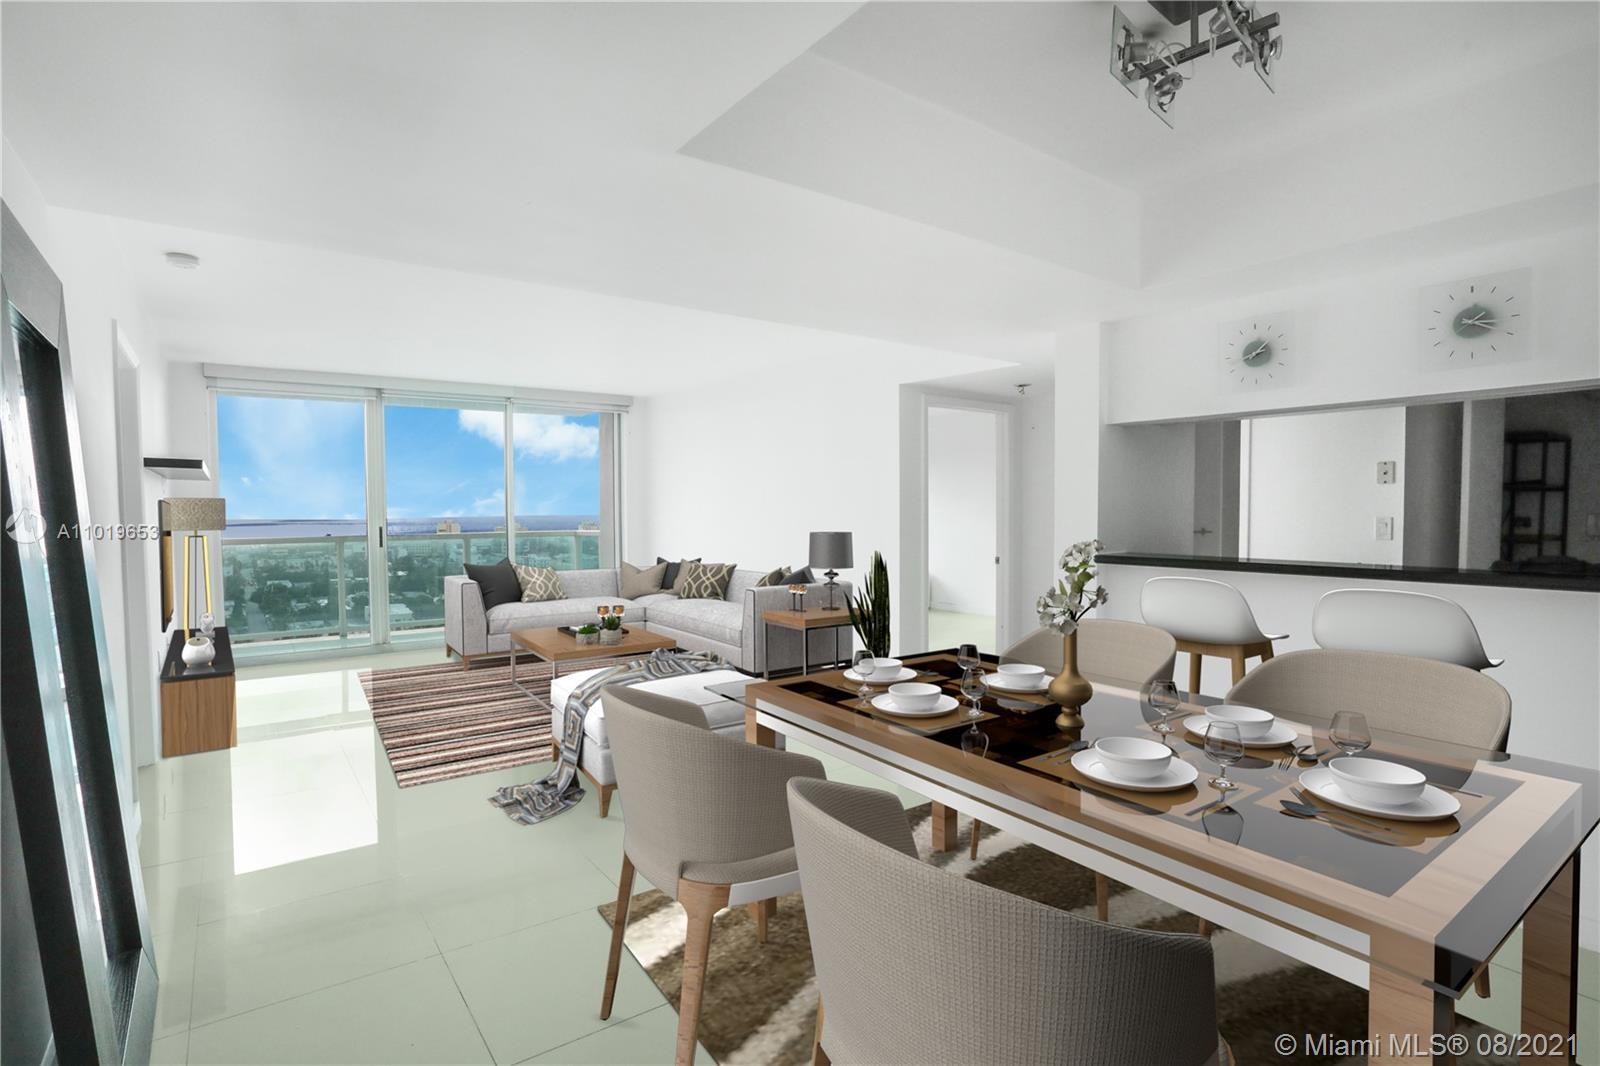 Take in the wonderful views of South Beach and sunrise over the ocean in this remodeled 2 bed/2 bath condo. Split floor plan layout provides privacy. Master bedroom features a large walk in closet, dressing area and of course luxury sized bathroom. The second bedroom is a good size also with plenty of closet space. The Floridian is bay front with excellent amenities including pools, spa, exercise room, boat docks, tennis, business center, concierge, 24 hour security, covered secure parking and much more.